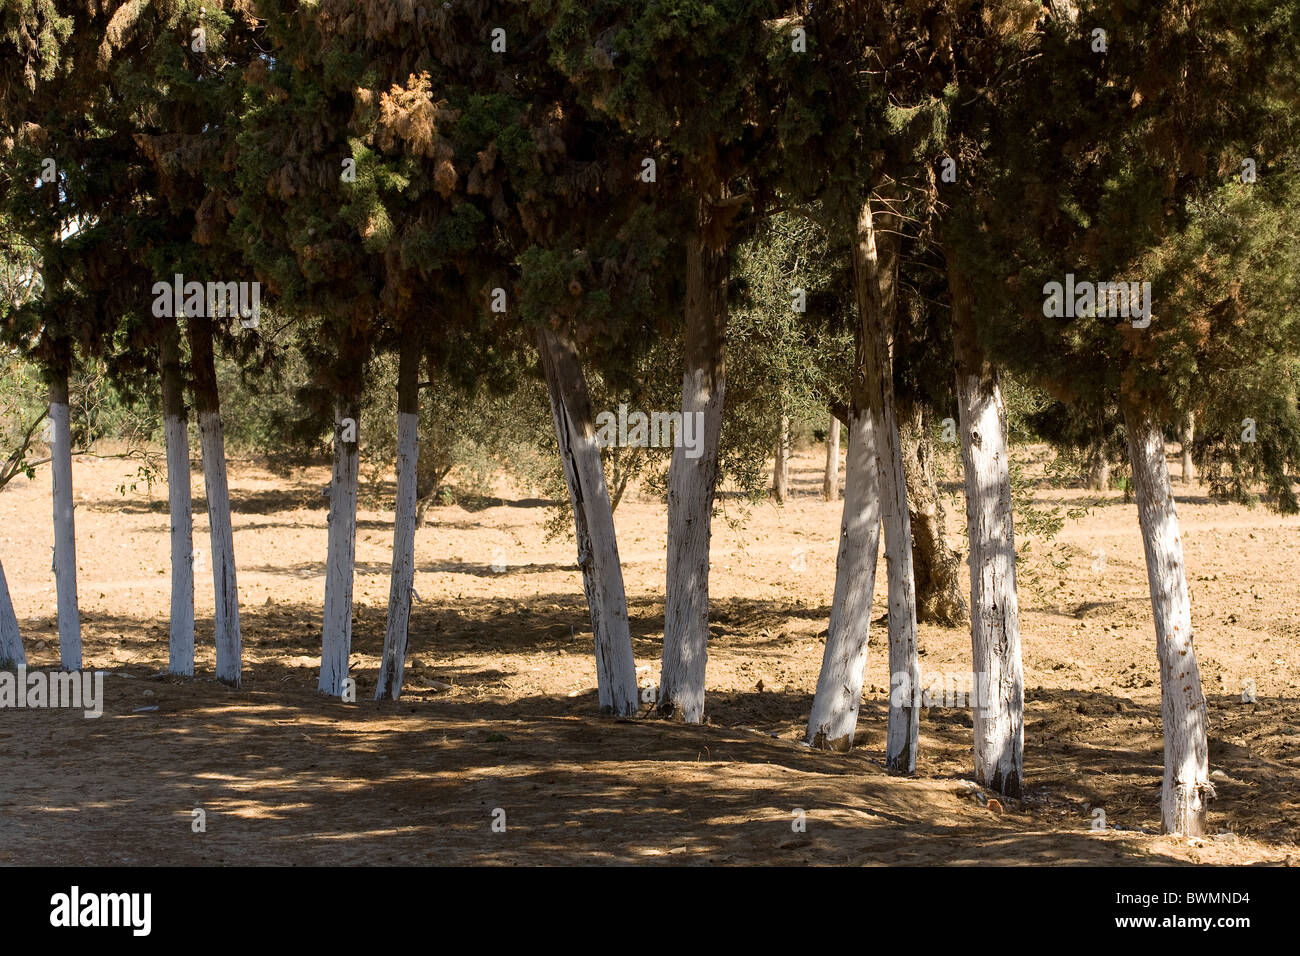 whitewashed conifer tree trunks along a road - Stock Image